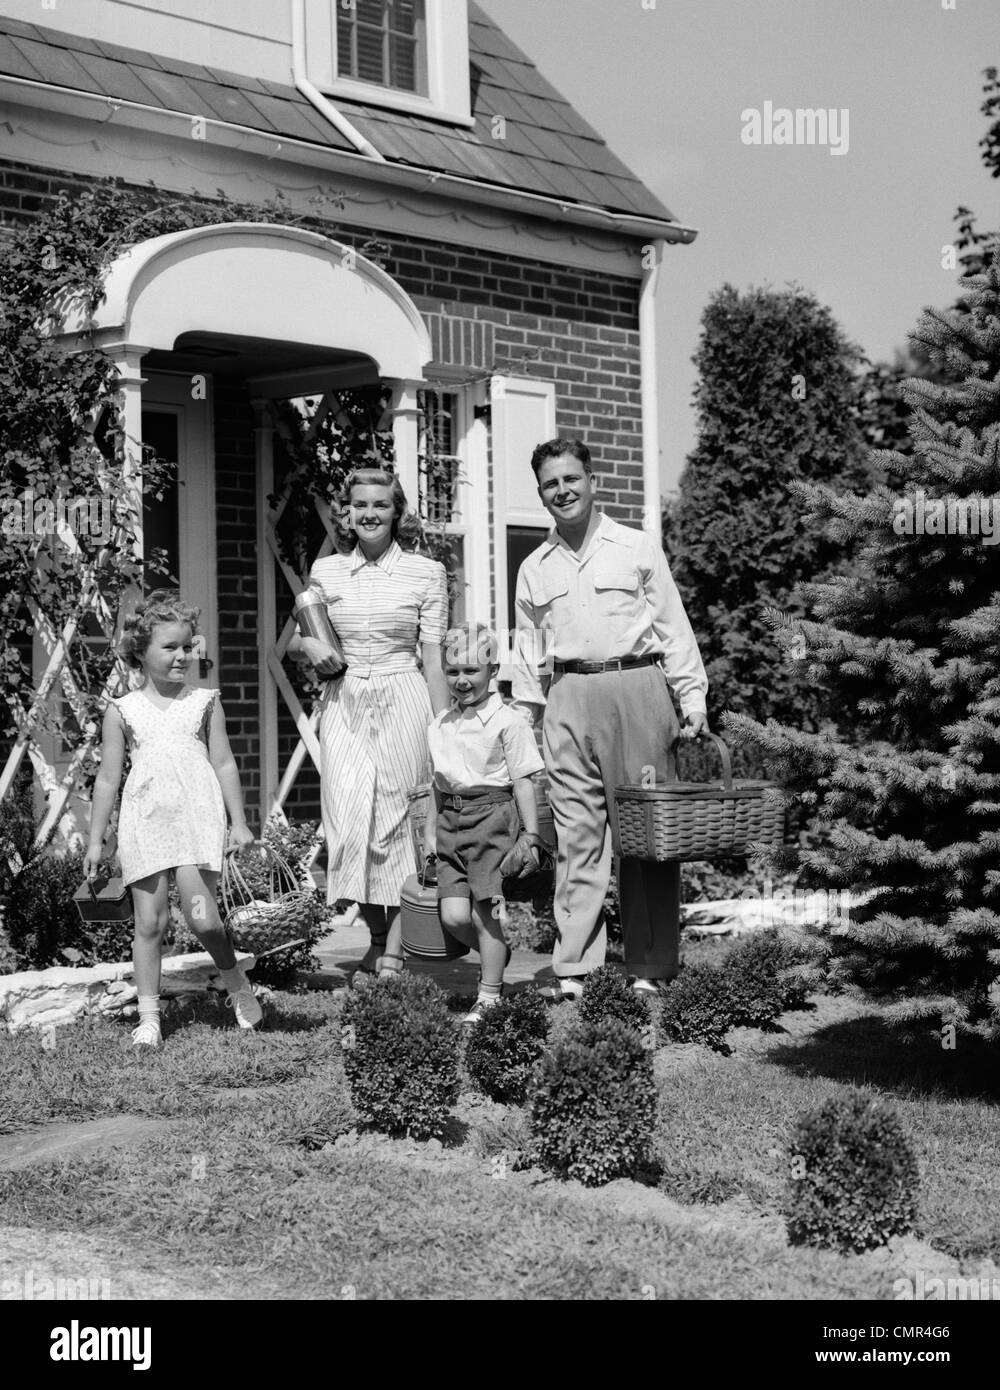 1940s 1950s FAMILY OF FOUR WALKING OUT OF HOUSE CARRYING PICNIC BASKETS THERMOS & JUG - Stock Image